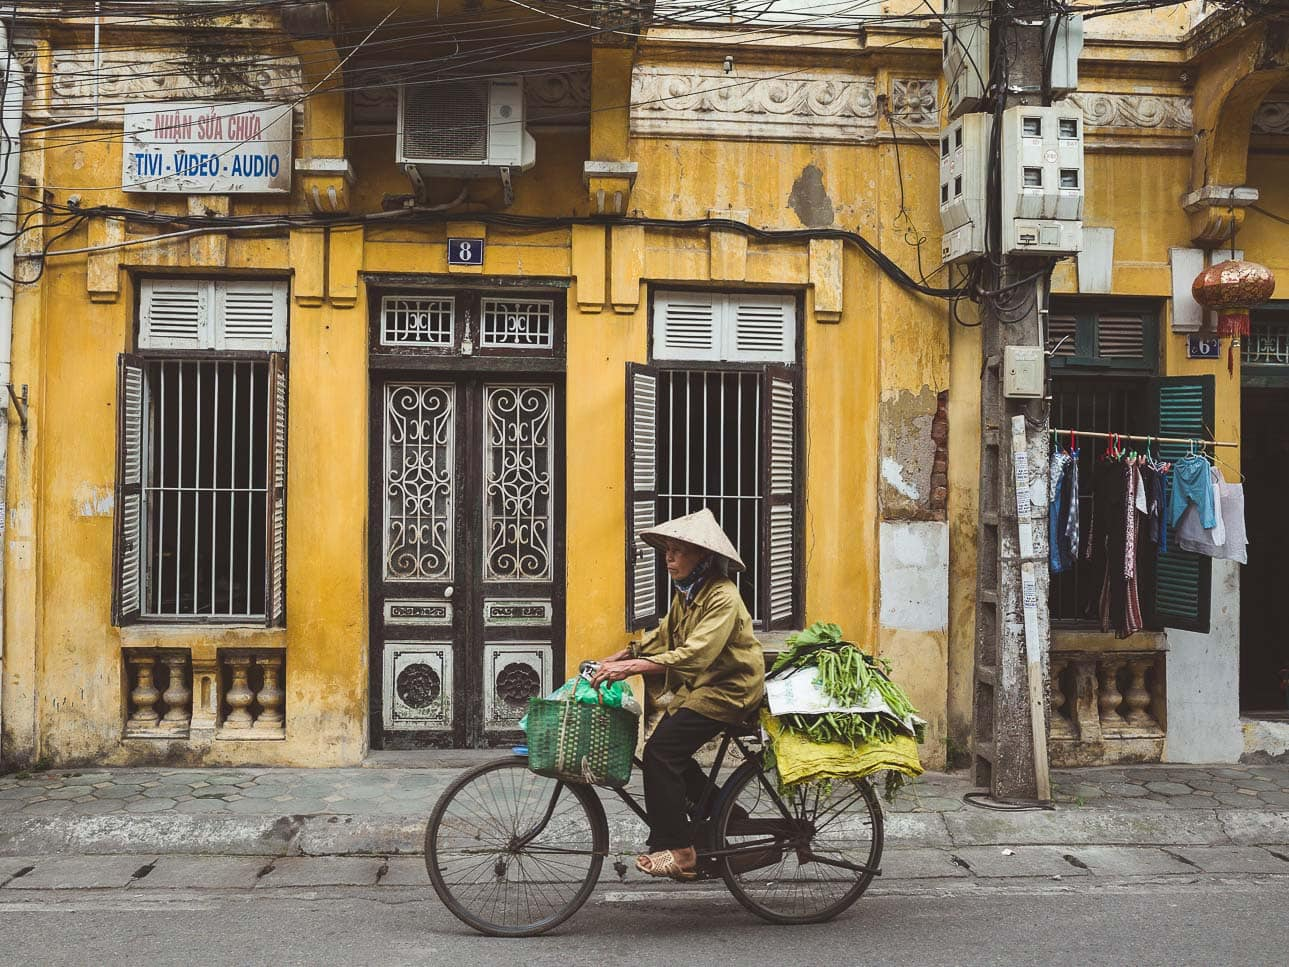 A woman wearing a conical hat rides her bicycle in front of a yellow home in Hanoi, Vietnam